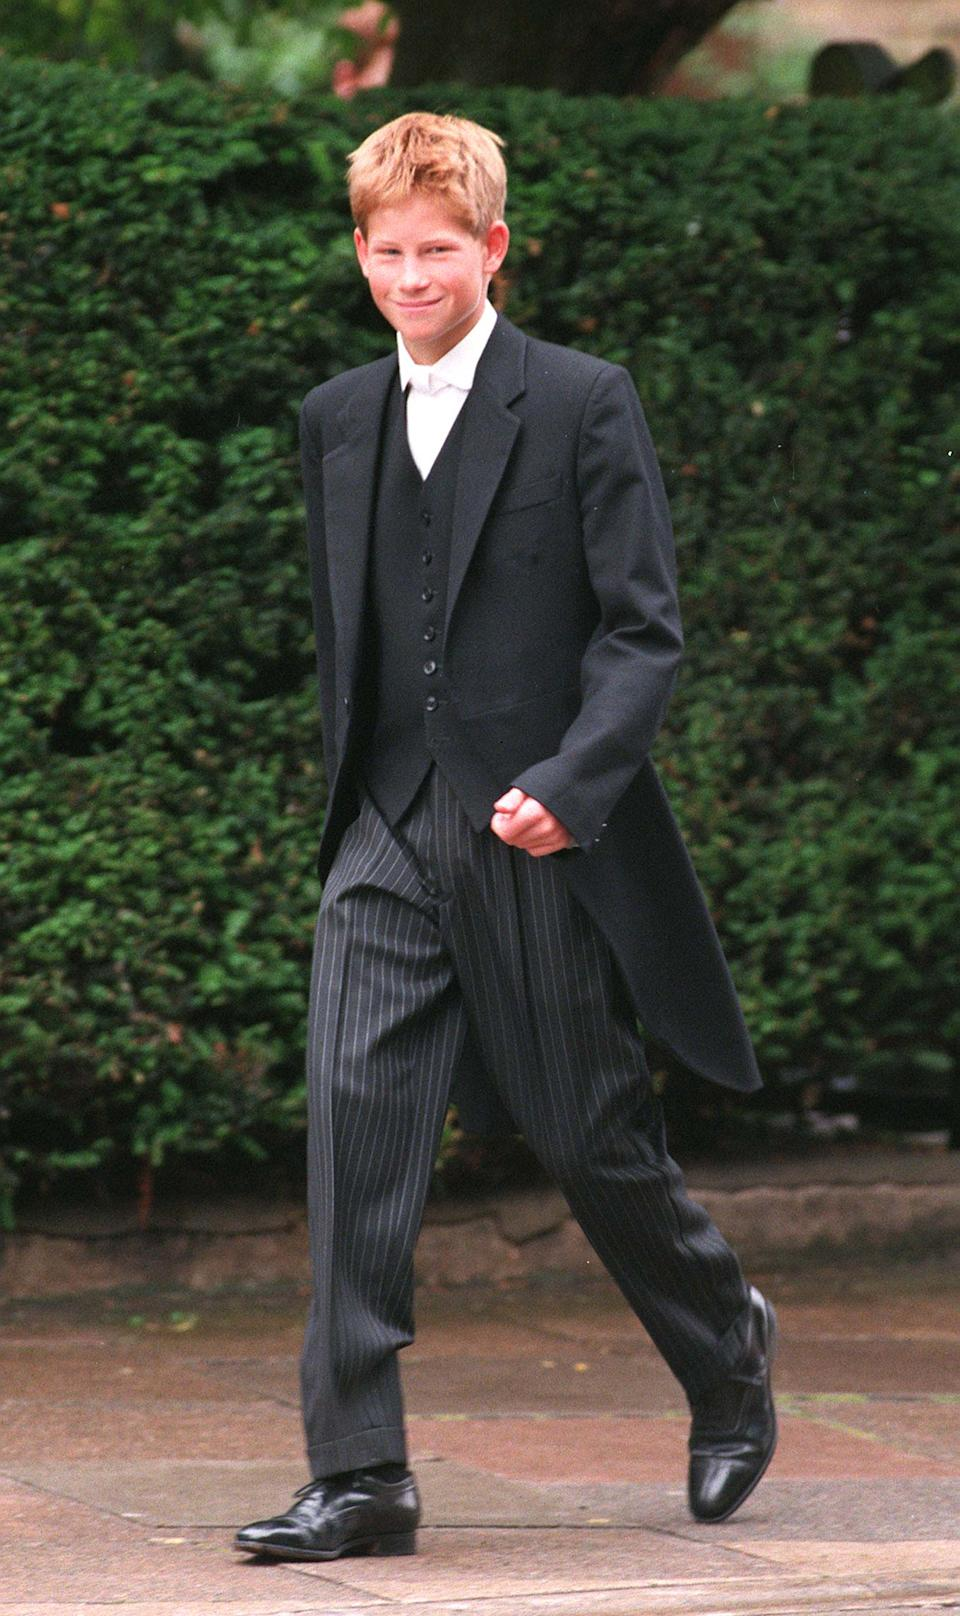 Prince Harry on his first day at Eton College in September 1998. [Photo: Getty]